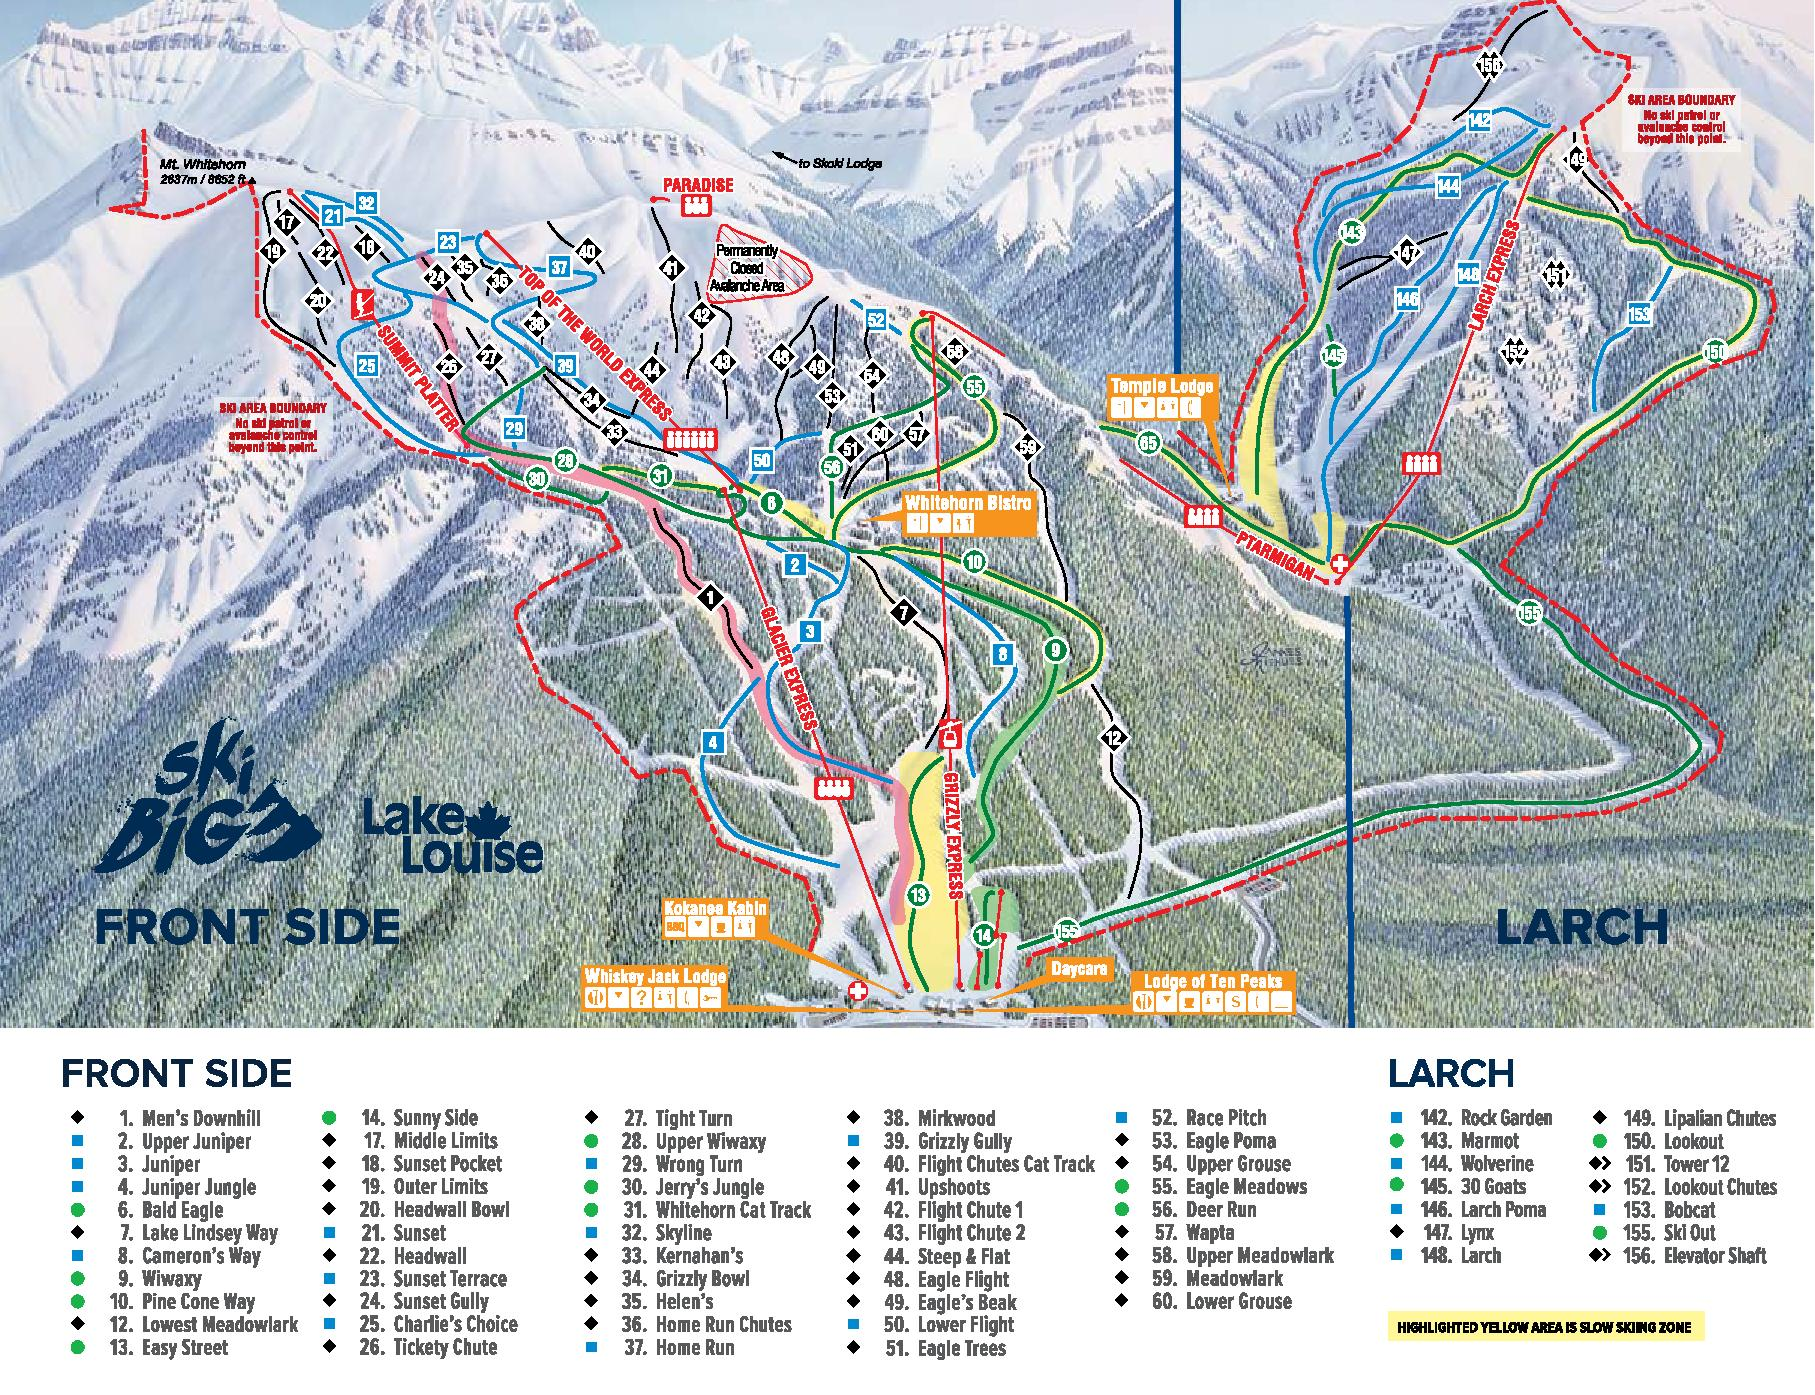 Lake Louise Front Side trail map